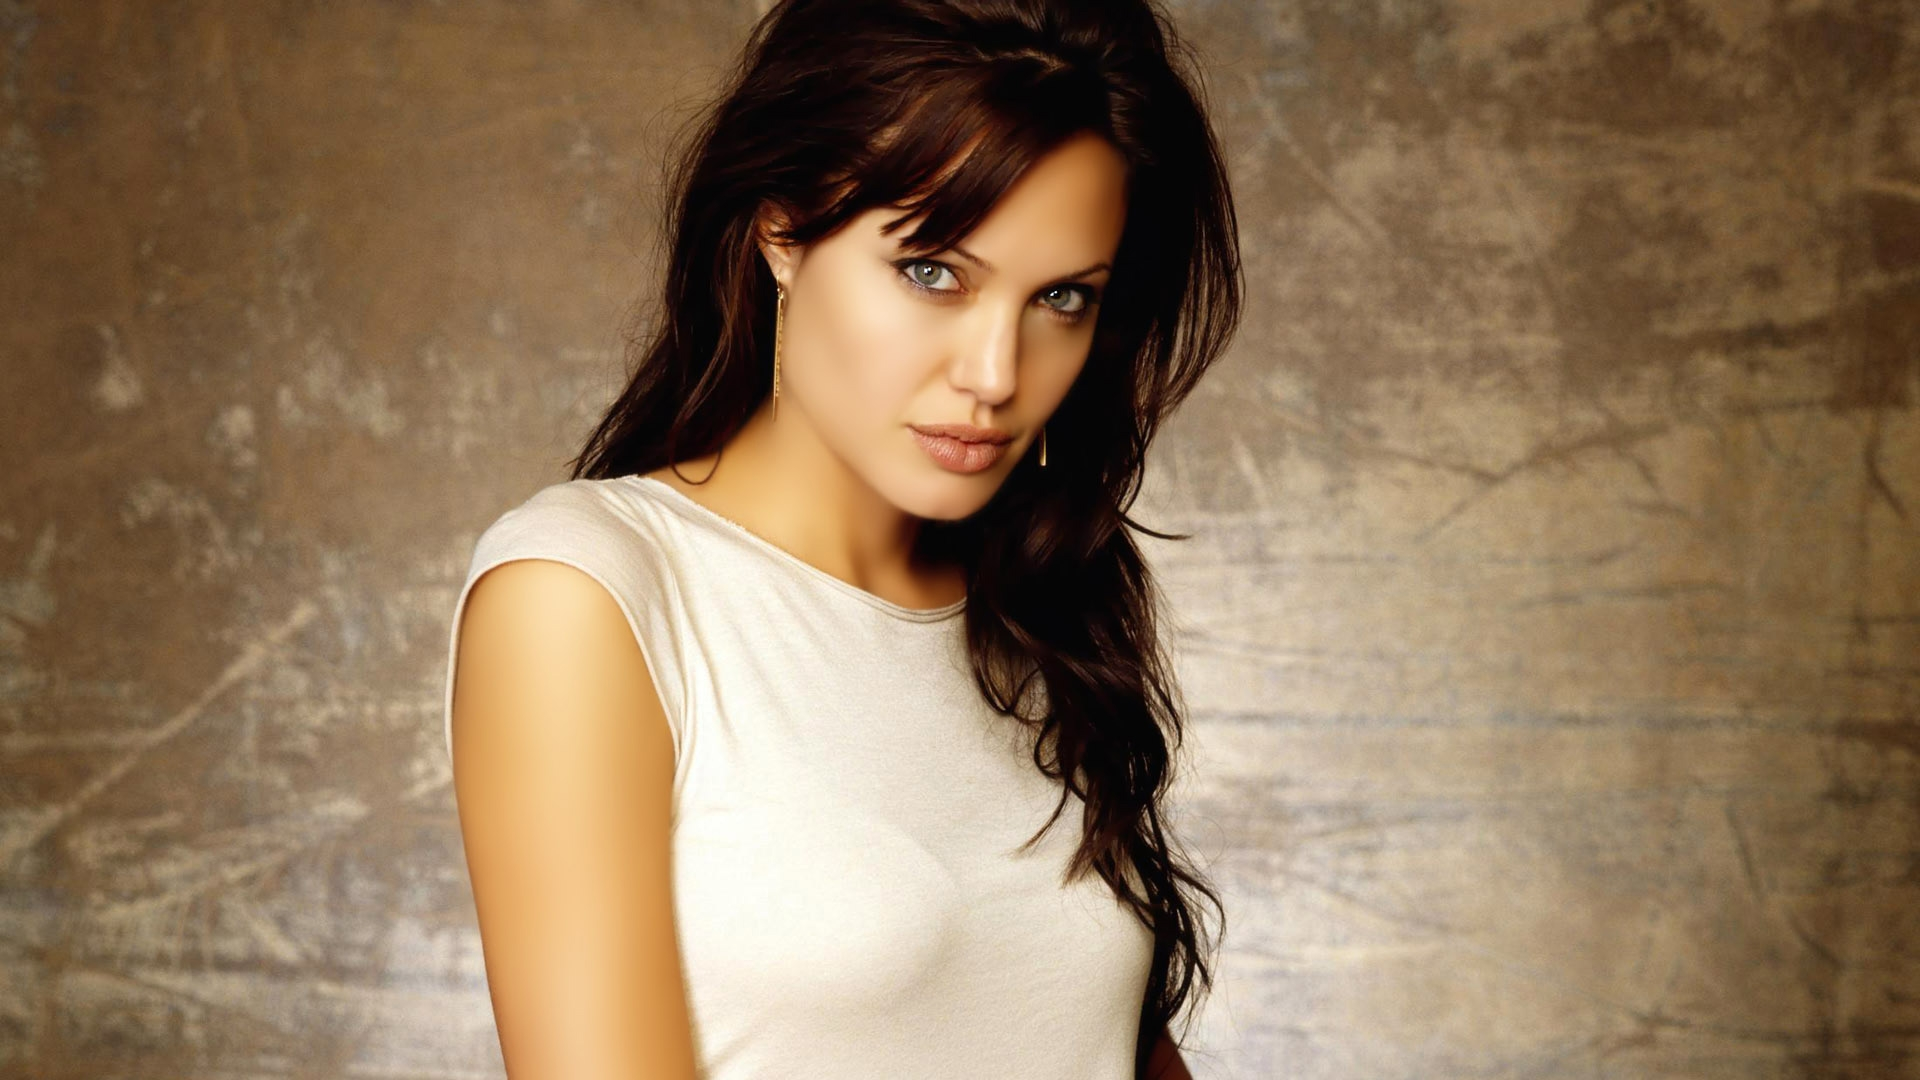 angelina jolie wallpapers desktop backgrounds 1920x1080 1920x1080